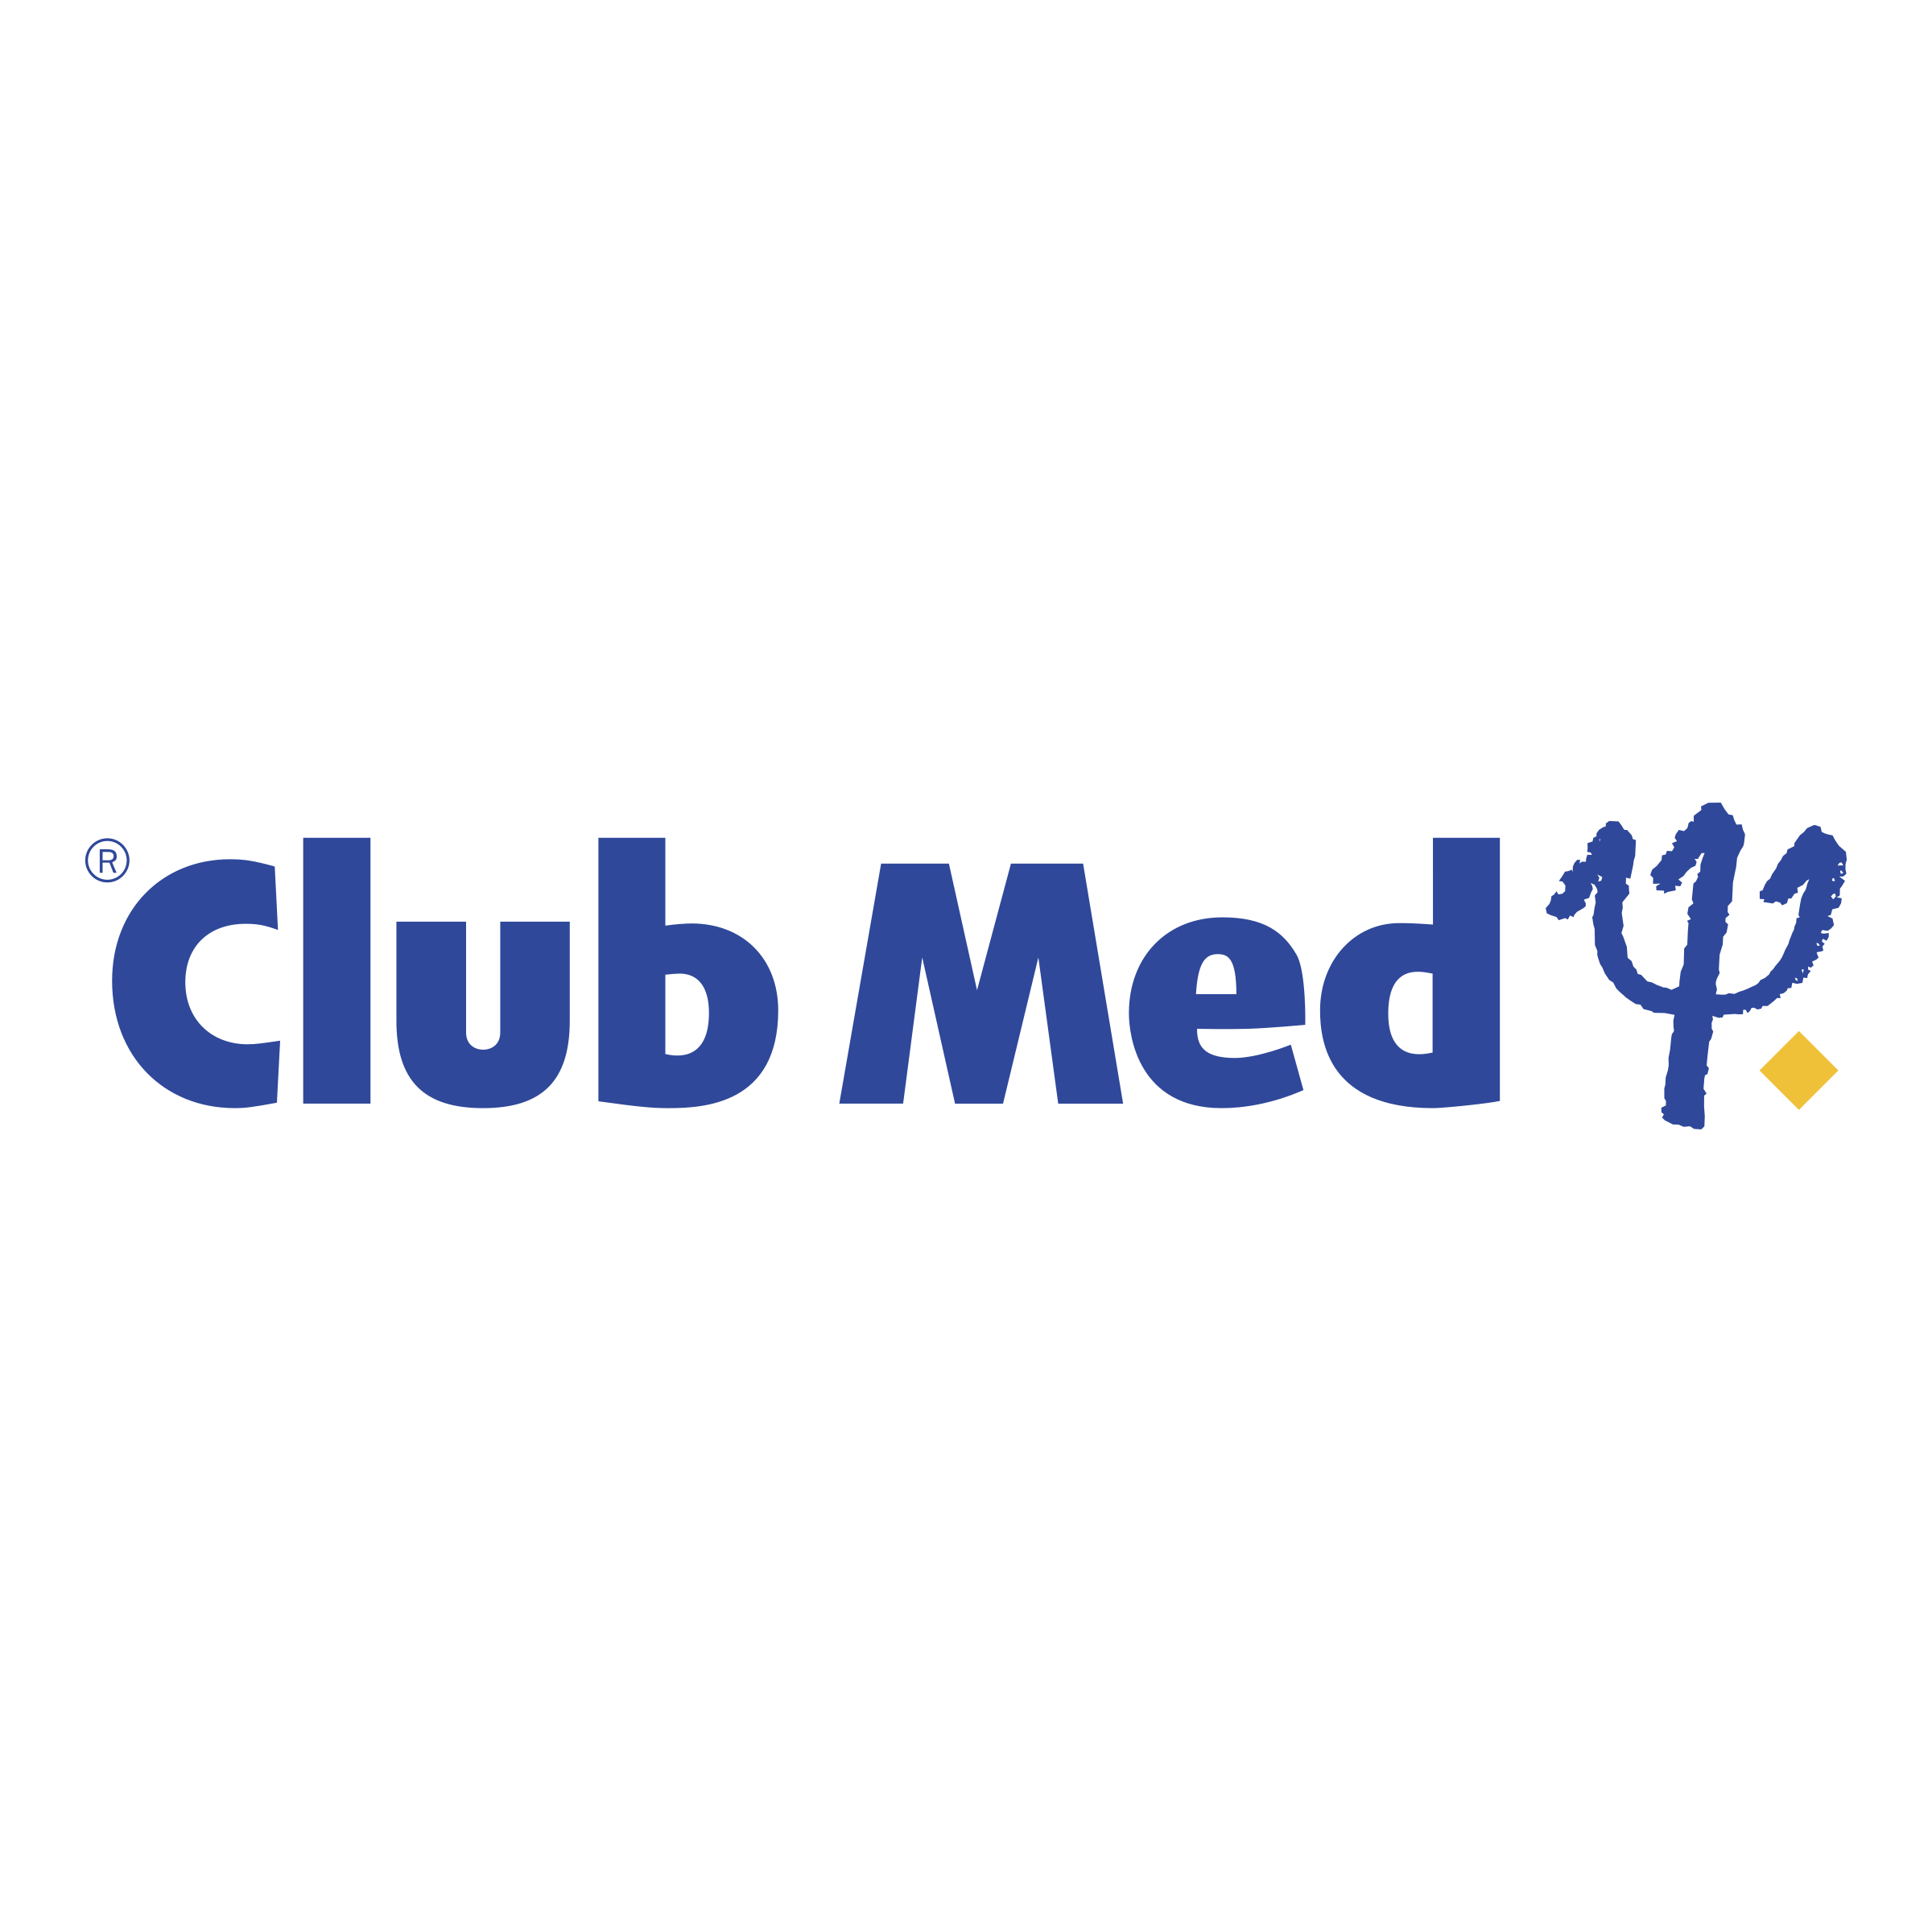 club-med-1-logo-png-transparent